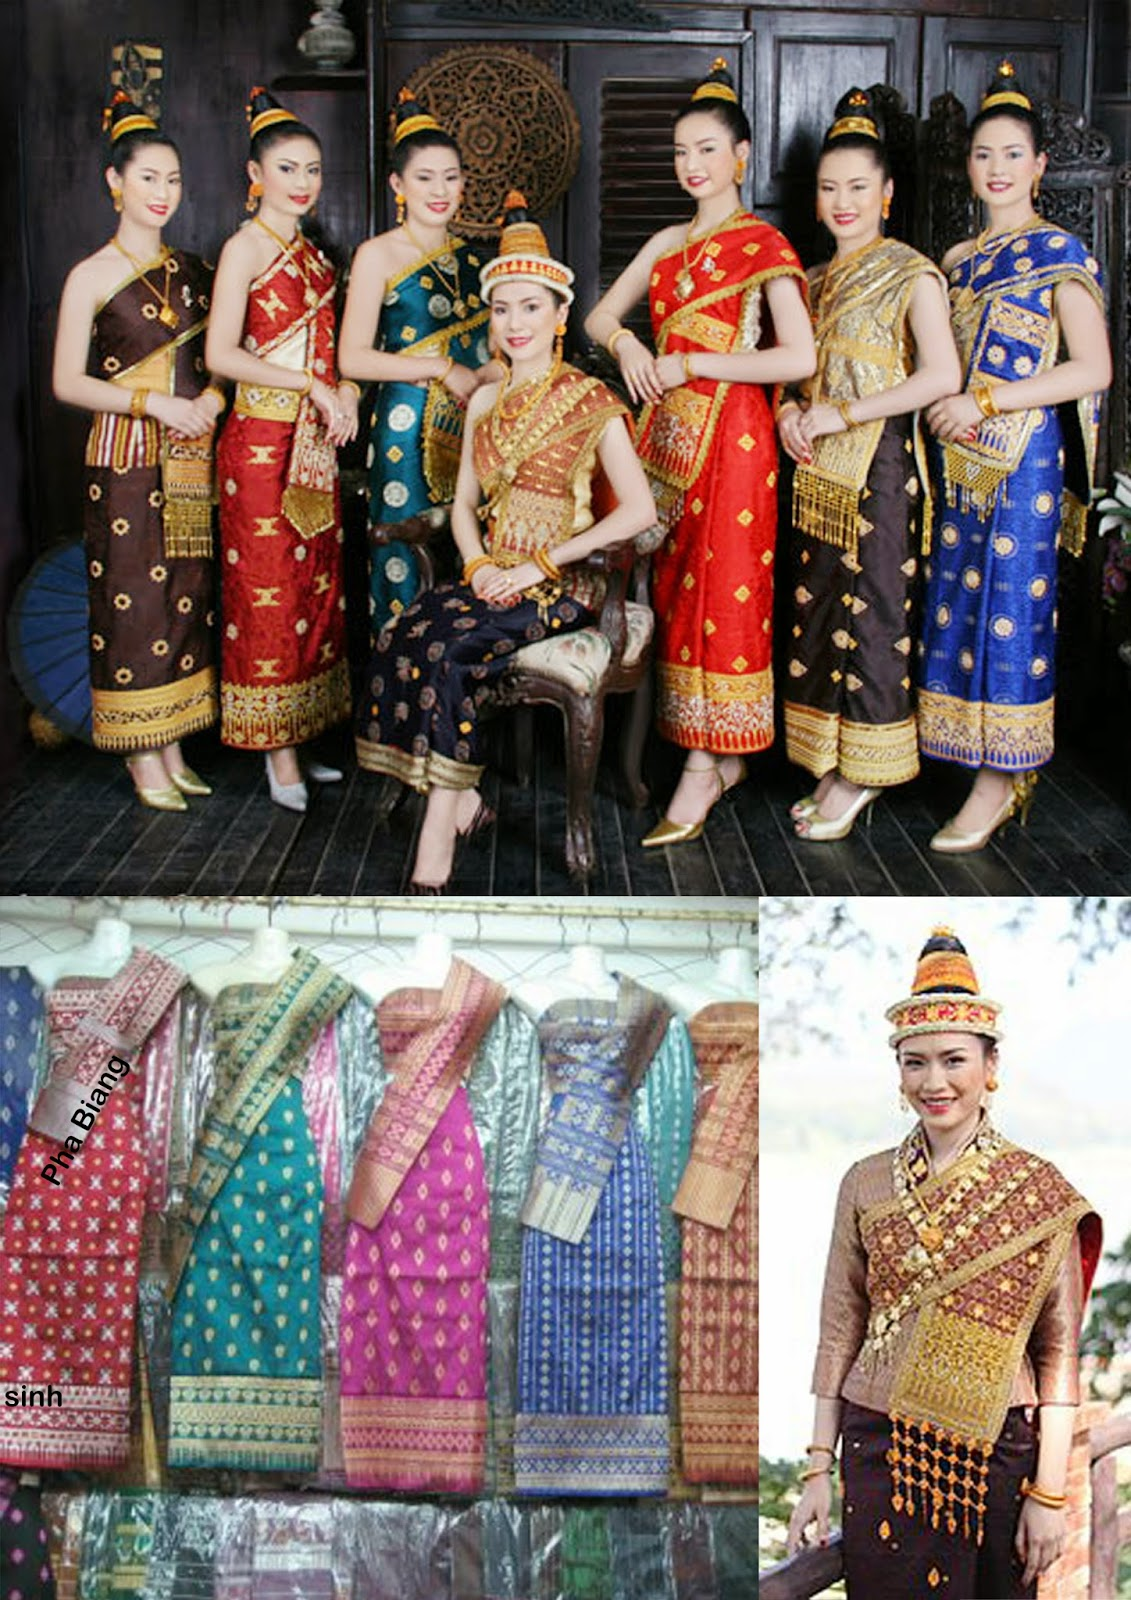 laos traditional clothing lao laotian thailand asean costume dresses wear outfits country outfit asian clothes tradition culture patterns cultural asia